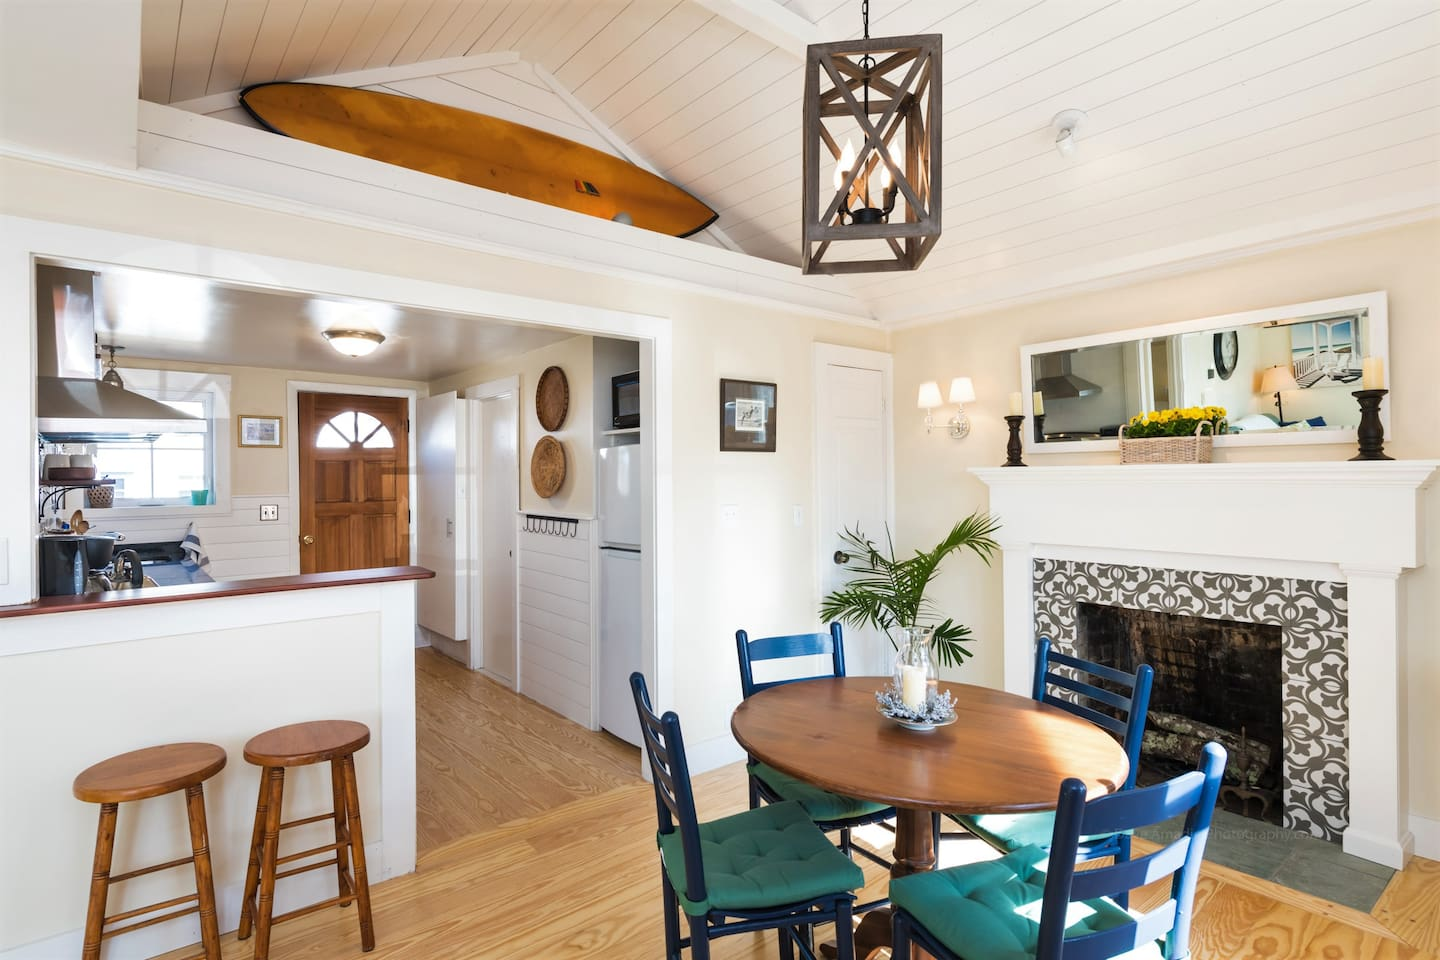 This one bedroom cottage has an open concept living room, dining room, kitchen.